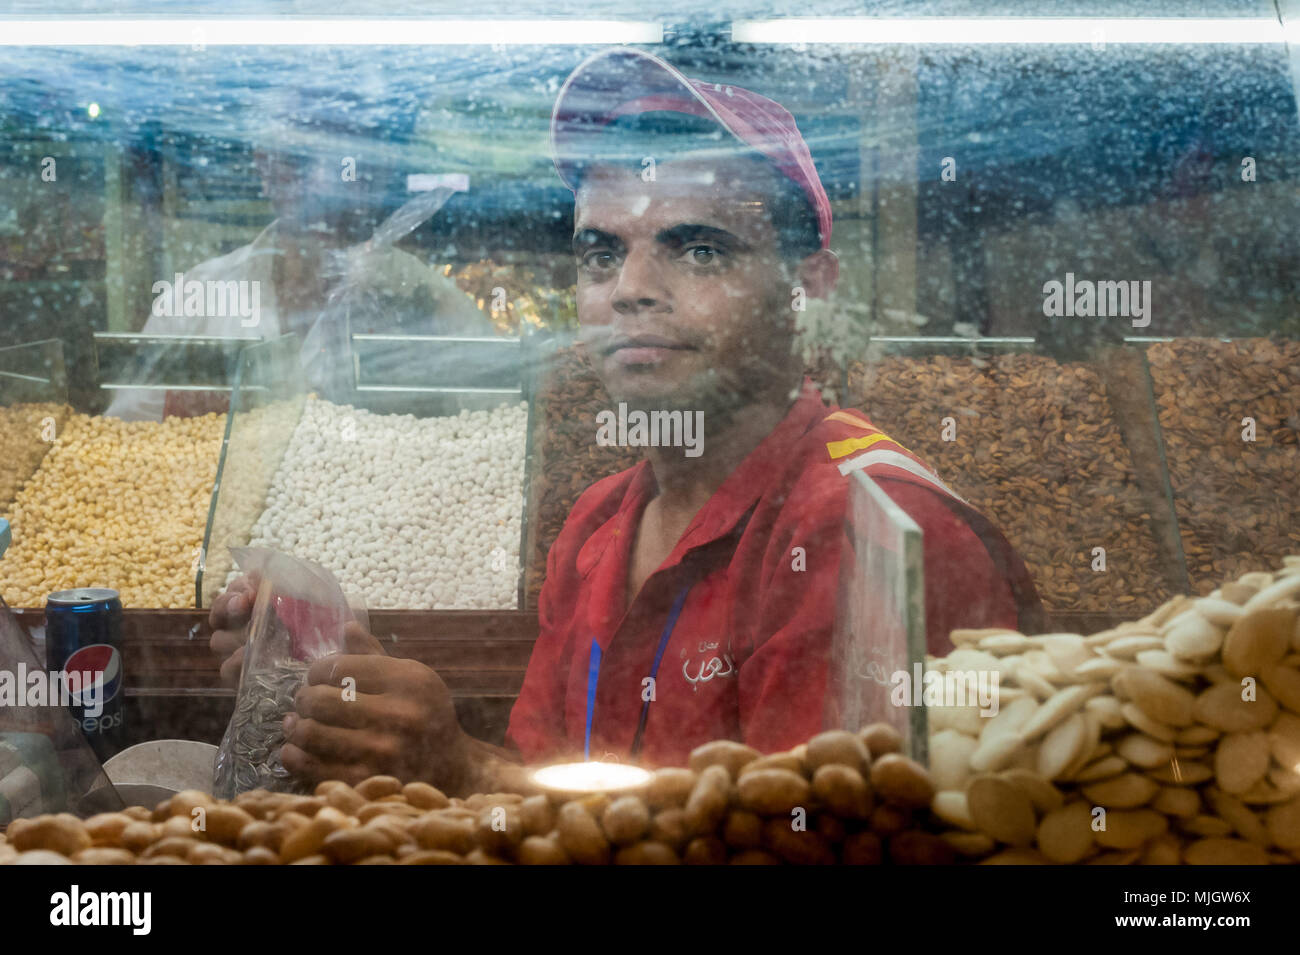 Nuts shopkeeper at Aqaba,al-ʻAqabah, a Jordanian coastal city situated at the northeastern tip of the Red Sea. - Stock Image